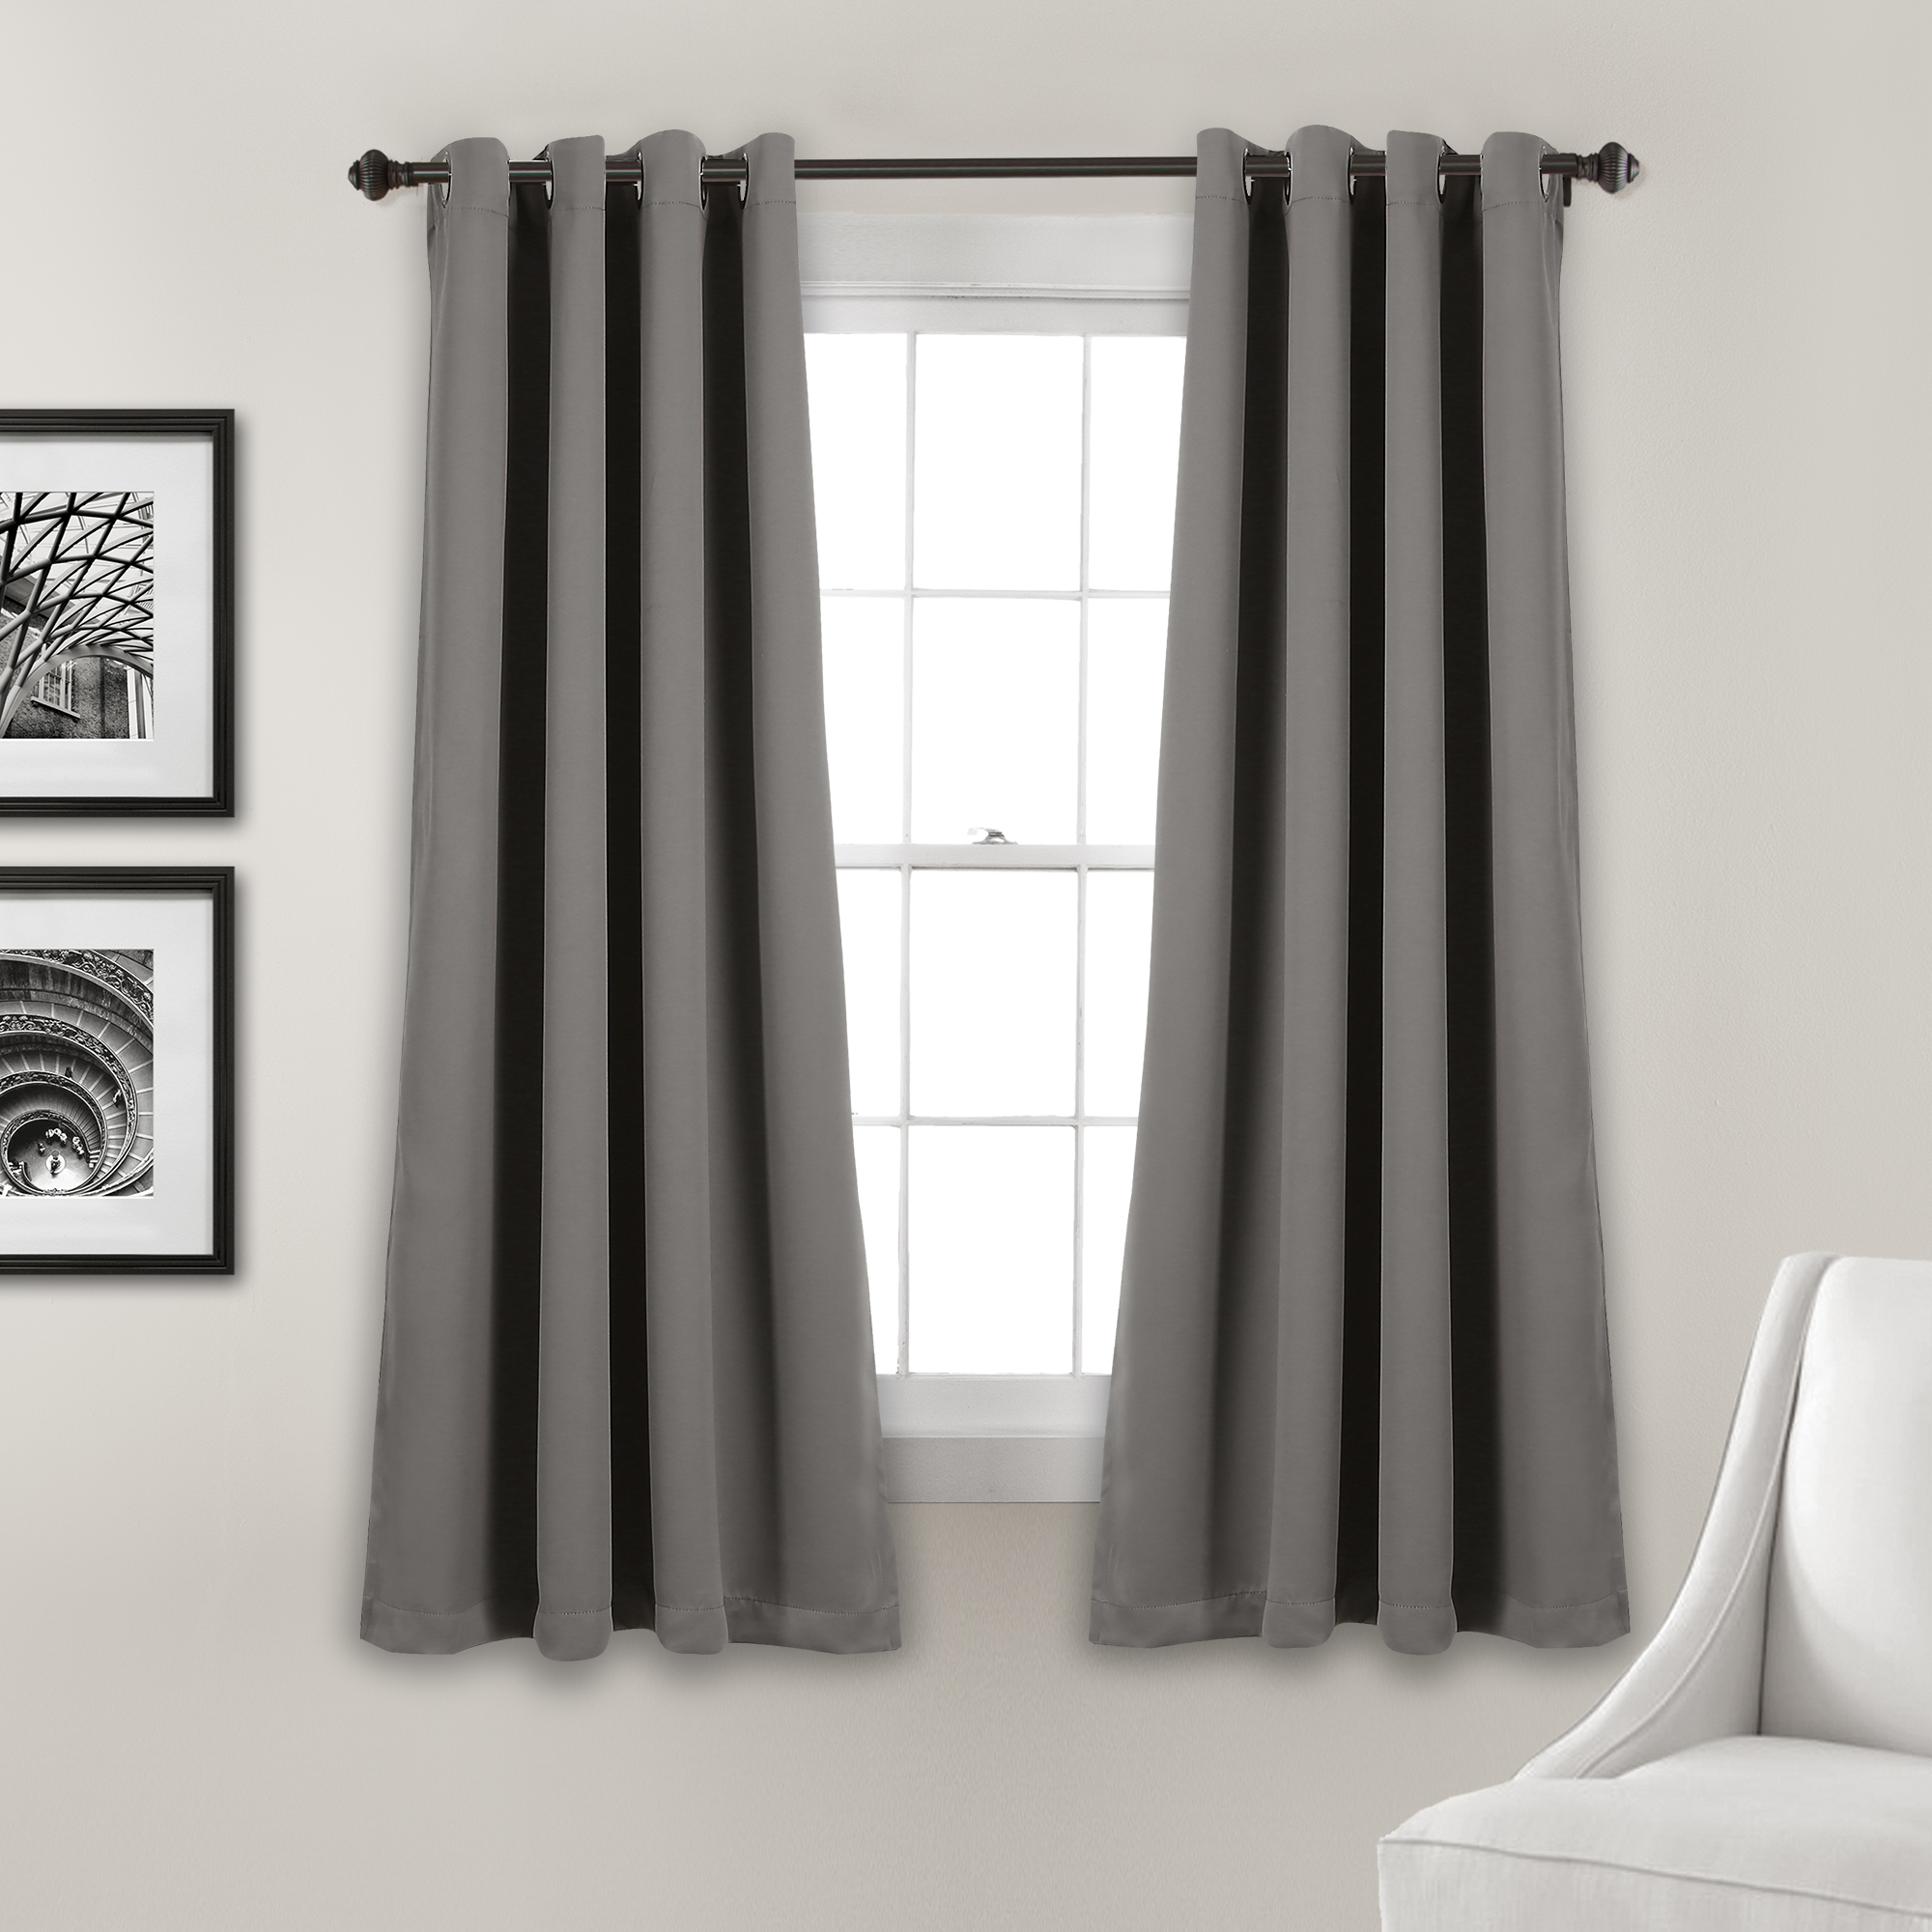 Famous Lush Décor Insulated Grommet Blackout Curtain Panels Pair In Insulated Grommet Blackout Curtain Panel Pairs (Gallery 17 of 20)